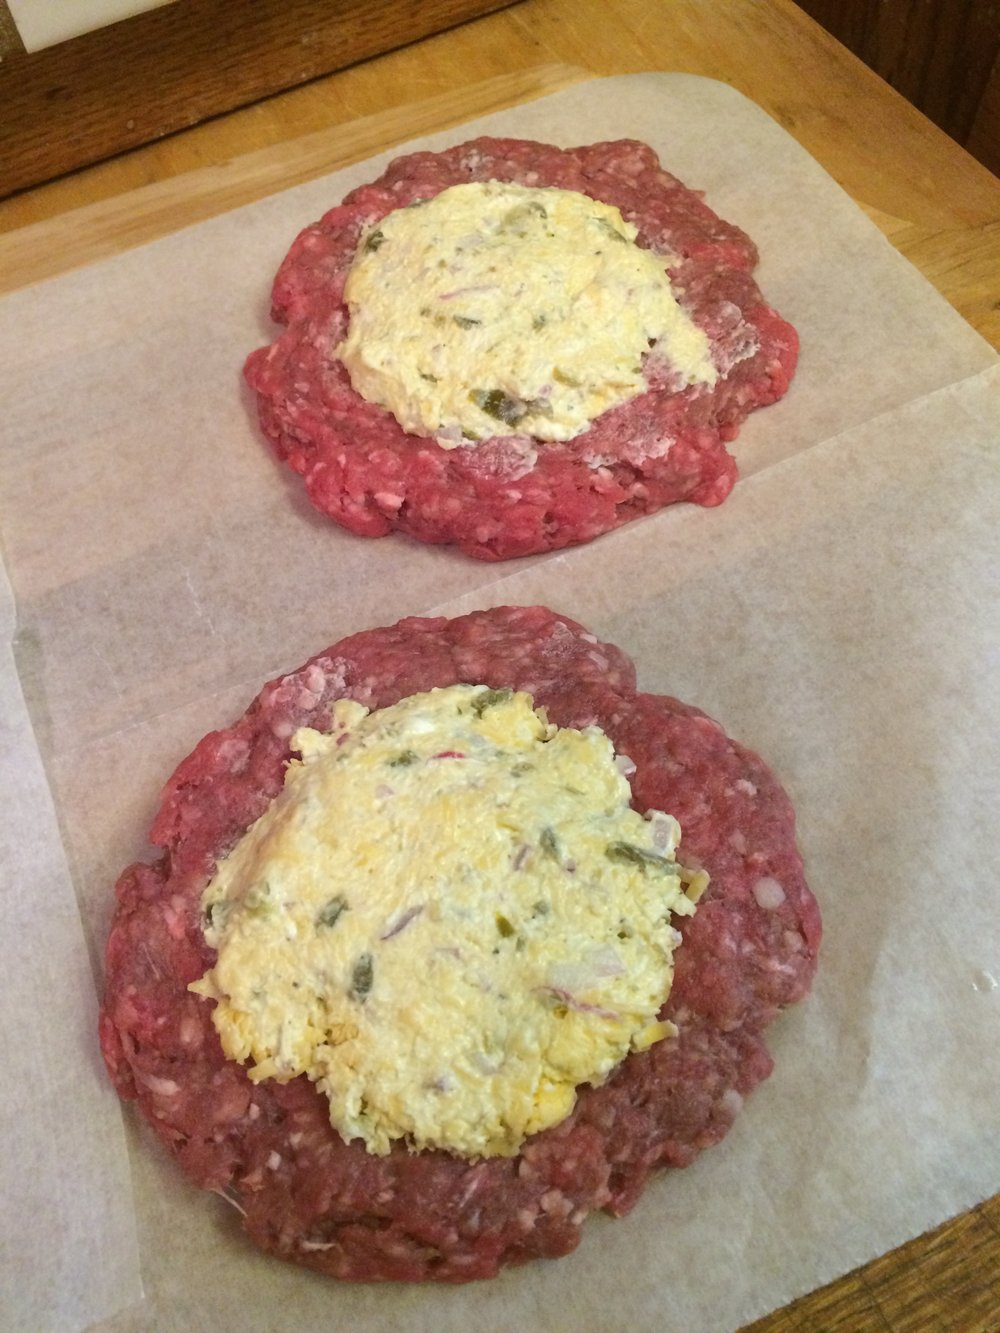 Fill each patty with the jalepeño filling and top with the remaining patty.